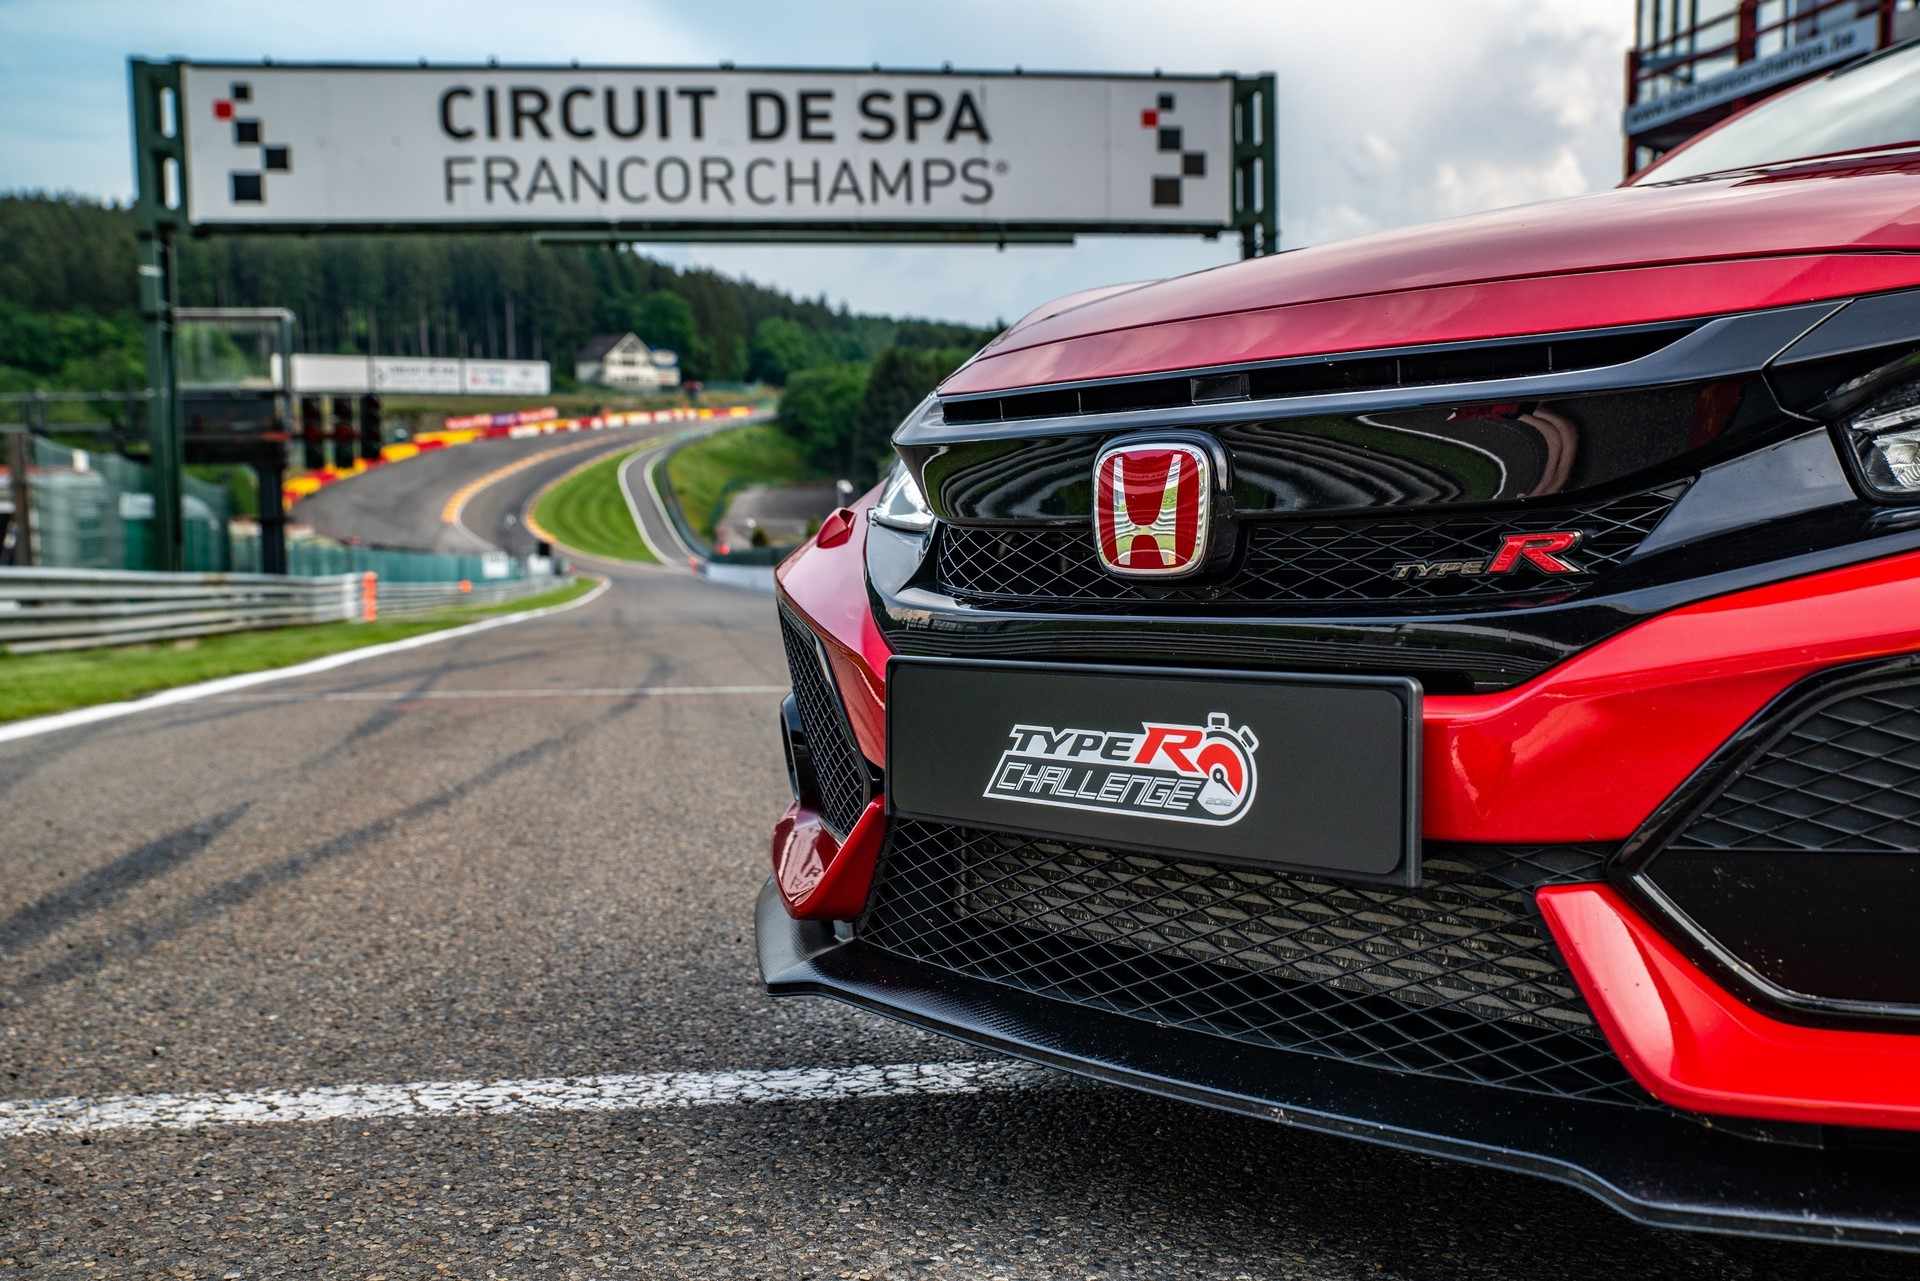 'Type R Challenge 2018' hits Eau Rouge: Japanese Super GT star Bertrand Baguette takes lap record at Spa-Francorchamps